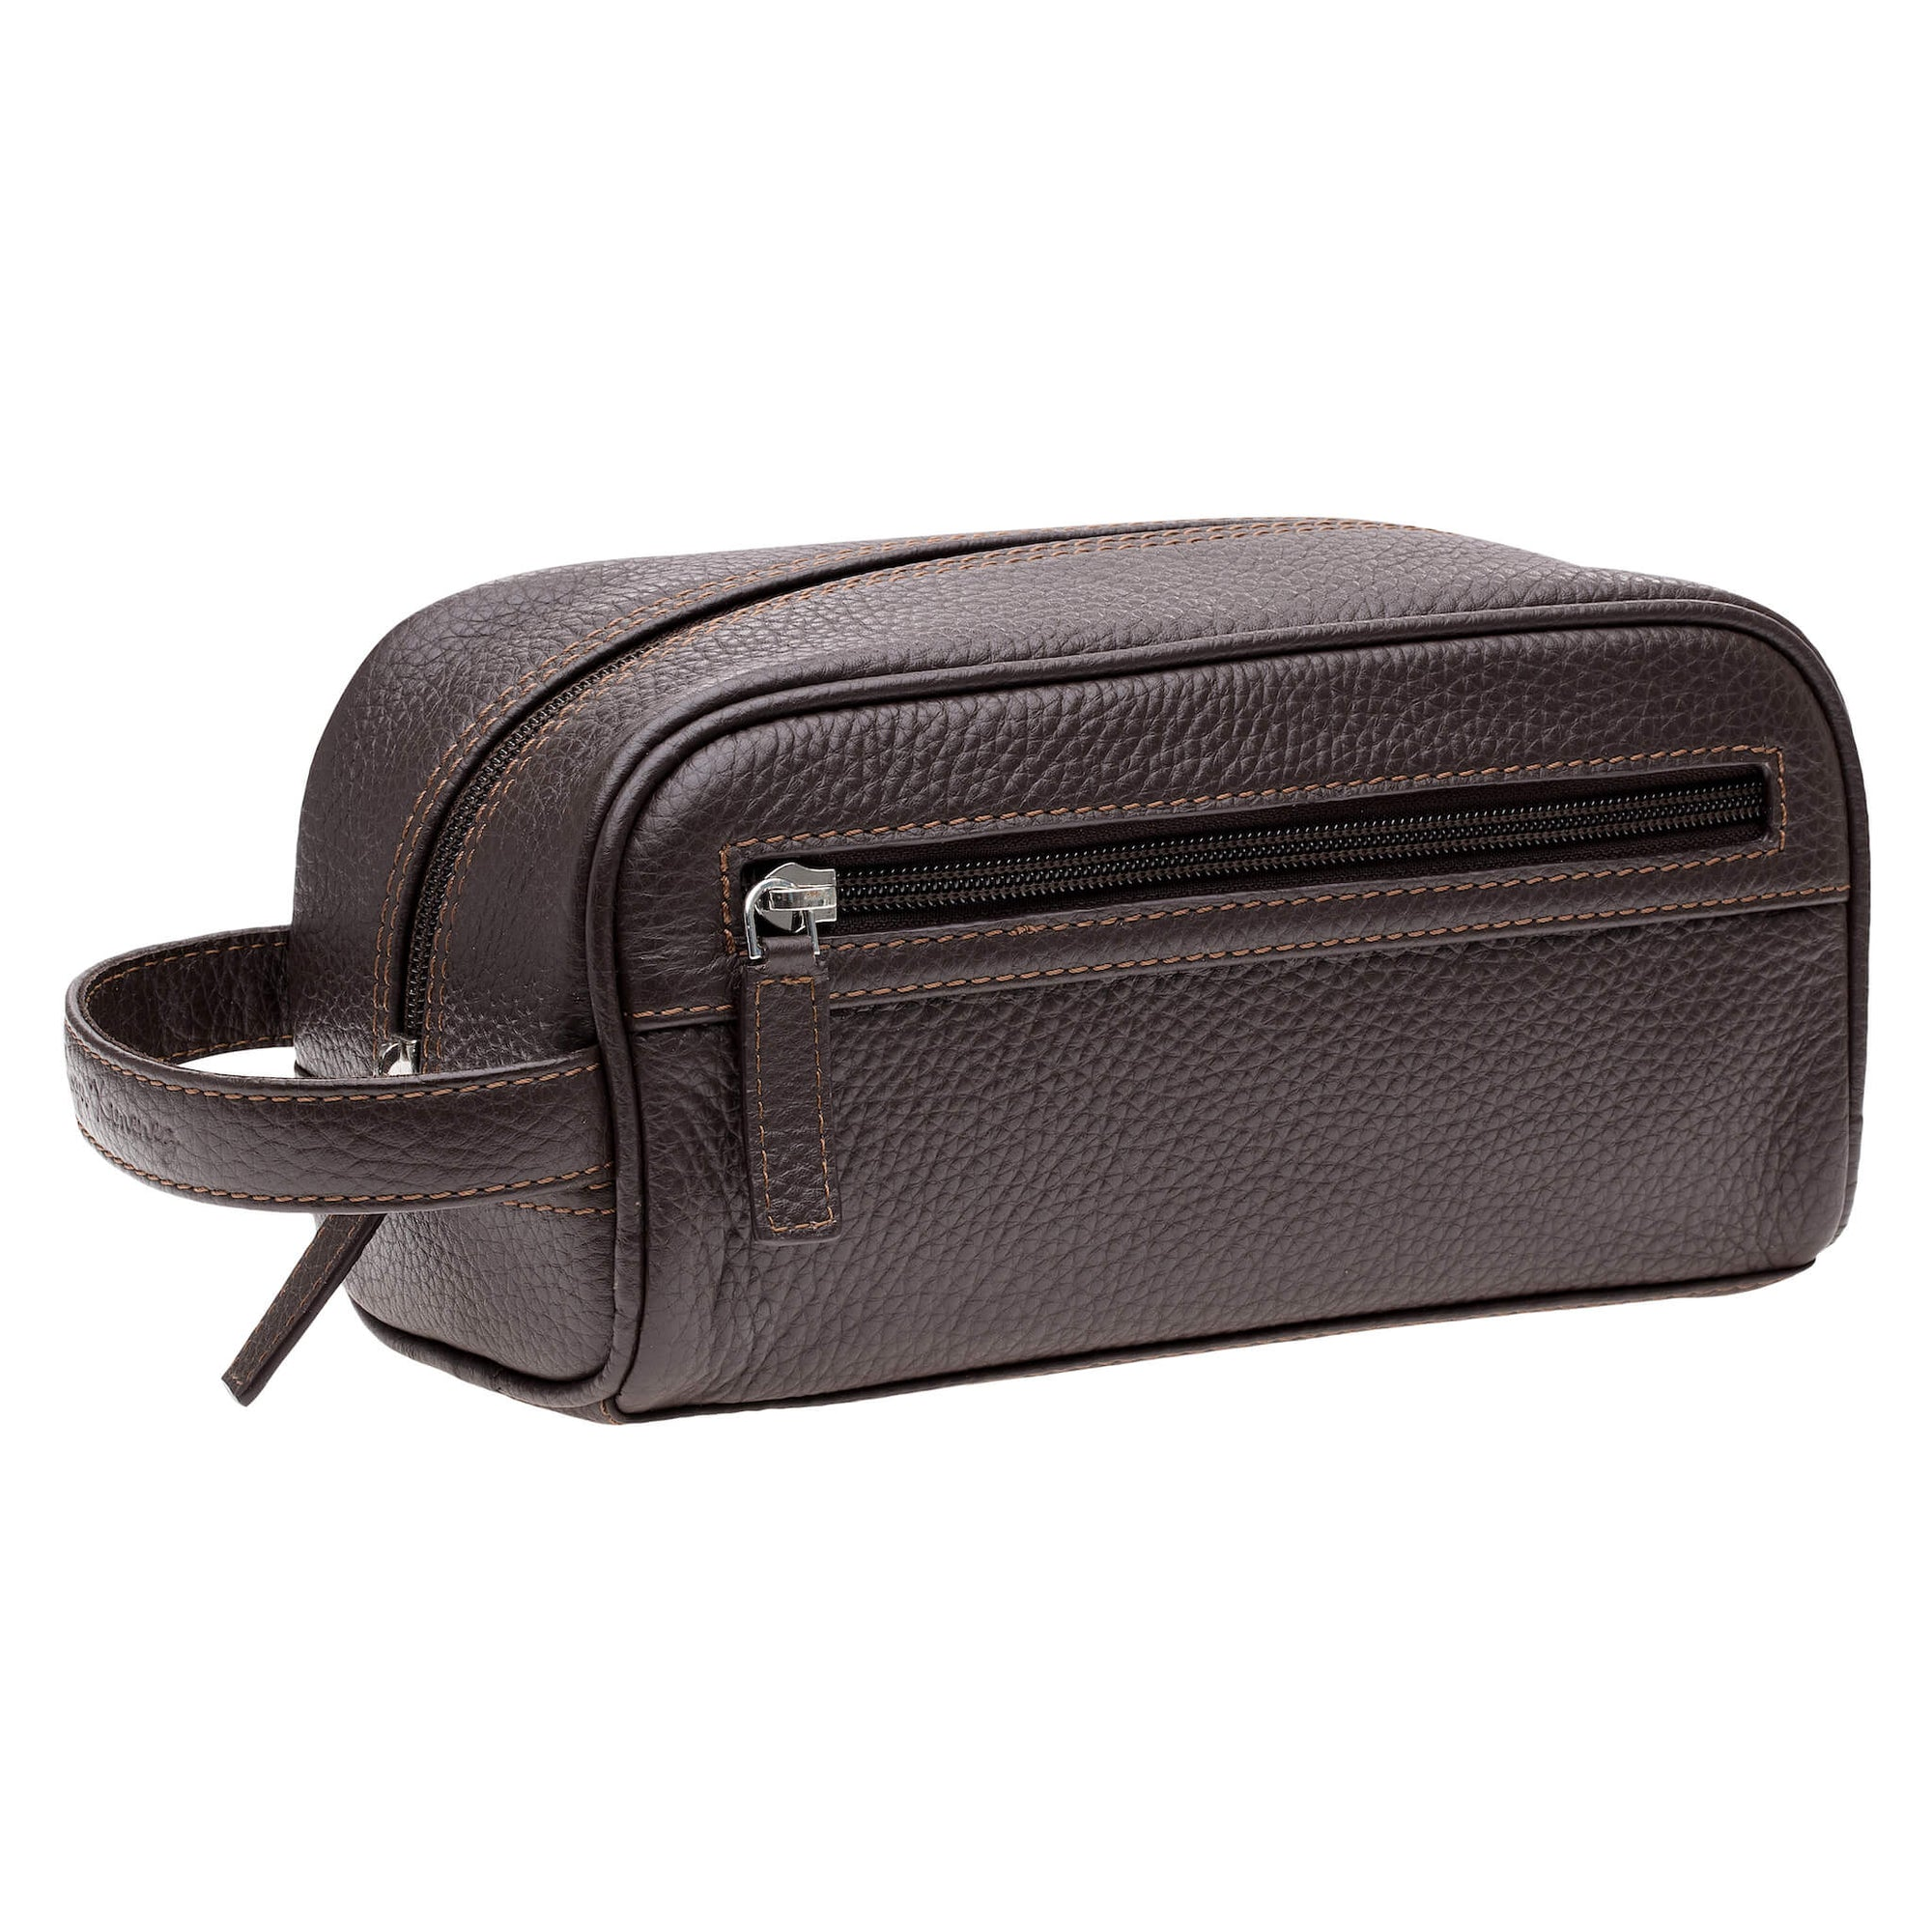 Brown Leather Toiletry Bag - Cognac | Mens Fashion & Leather Goods by Roger Ximenez